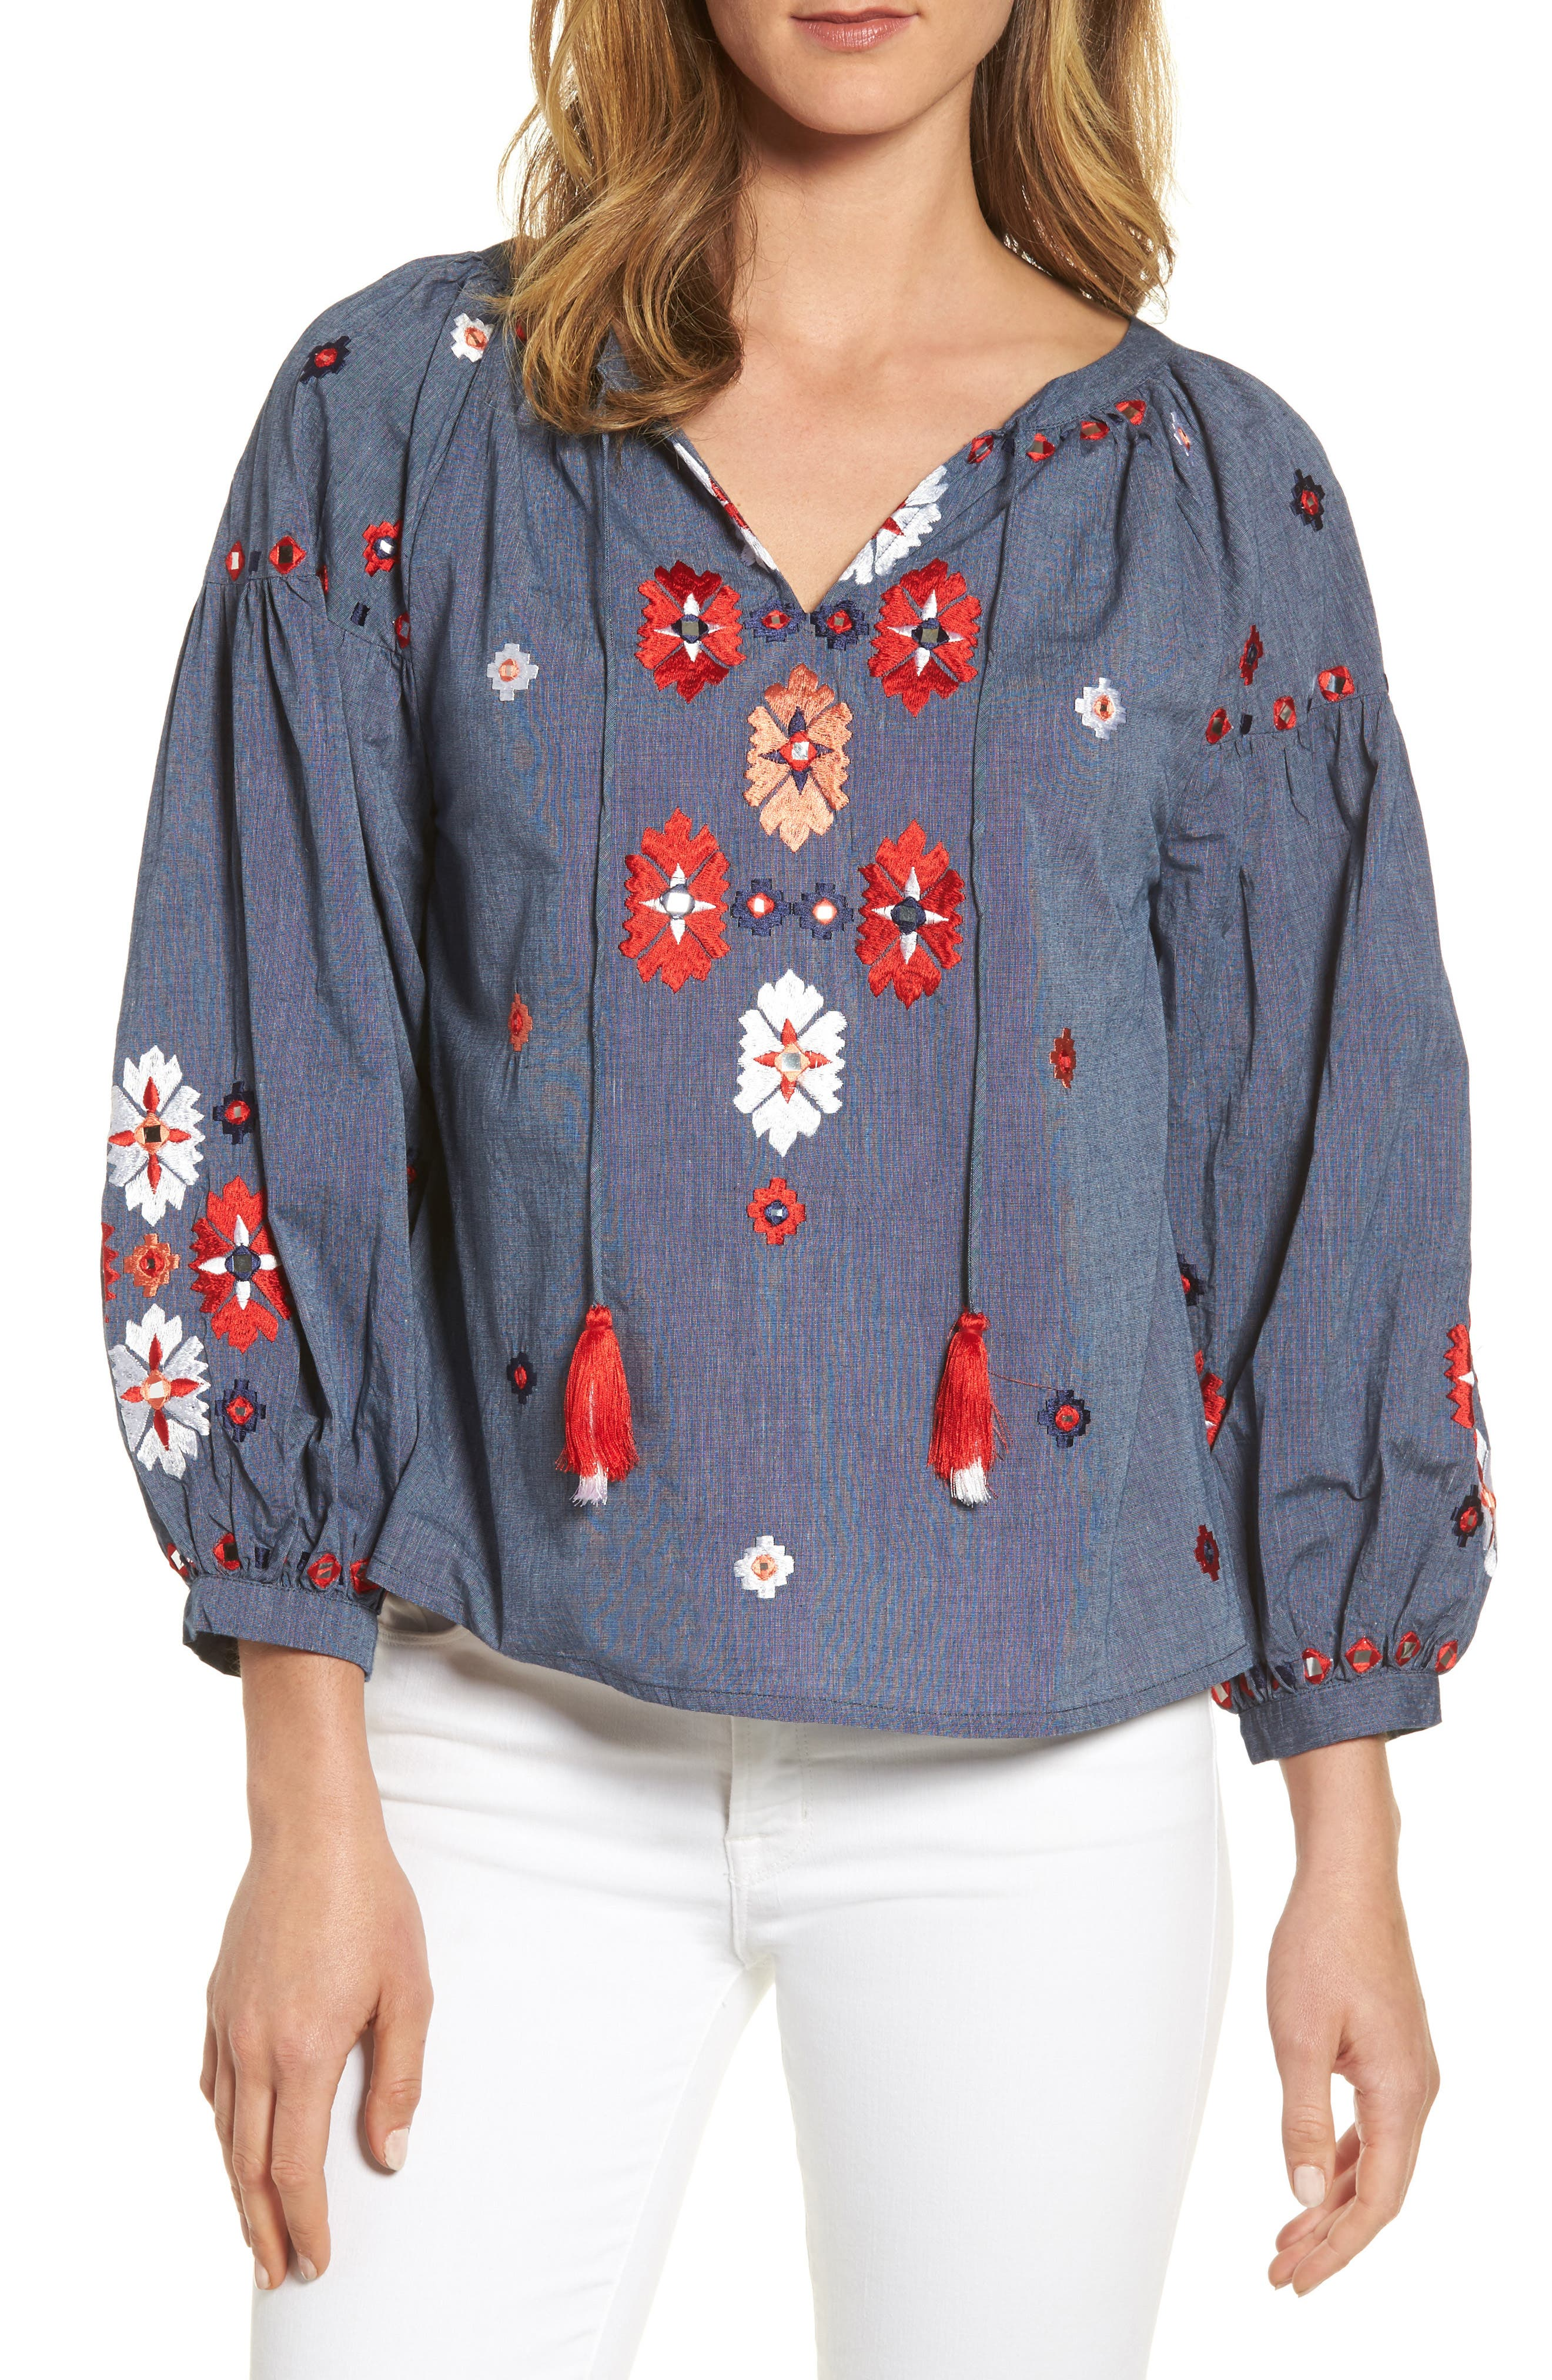 Elora Embroidered Chambray Top,                         Main,                         color, DENIM